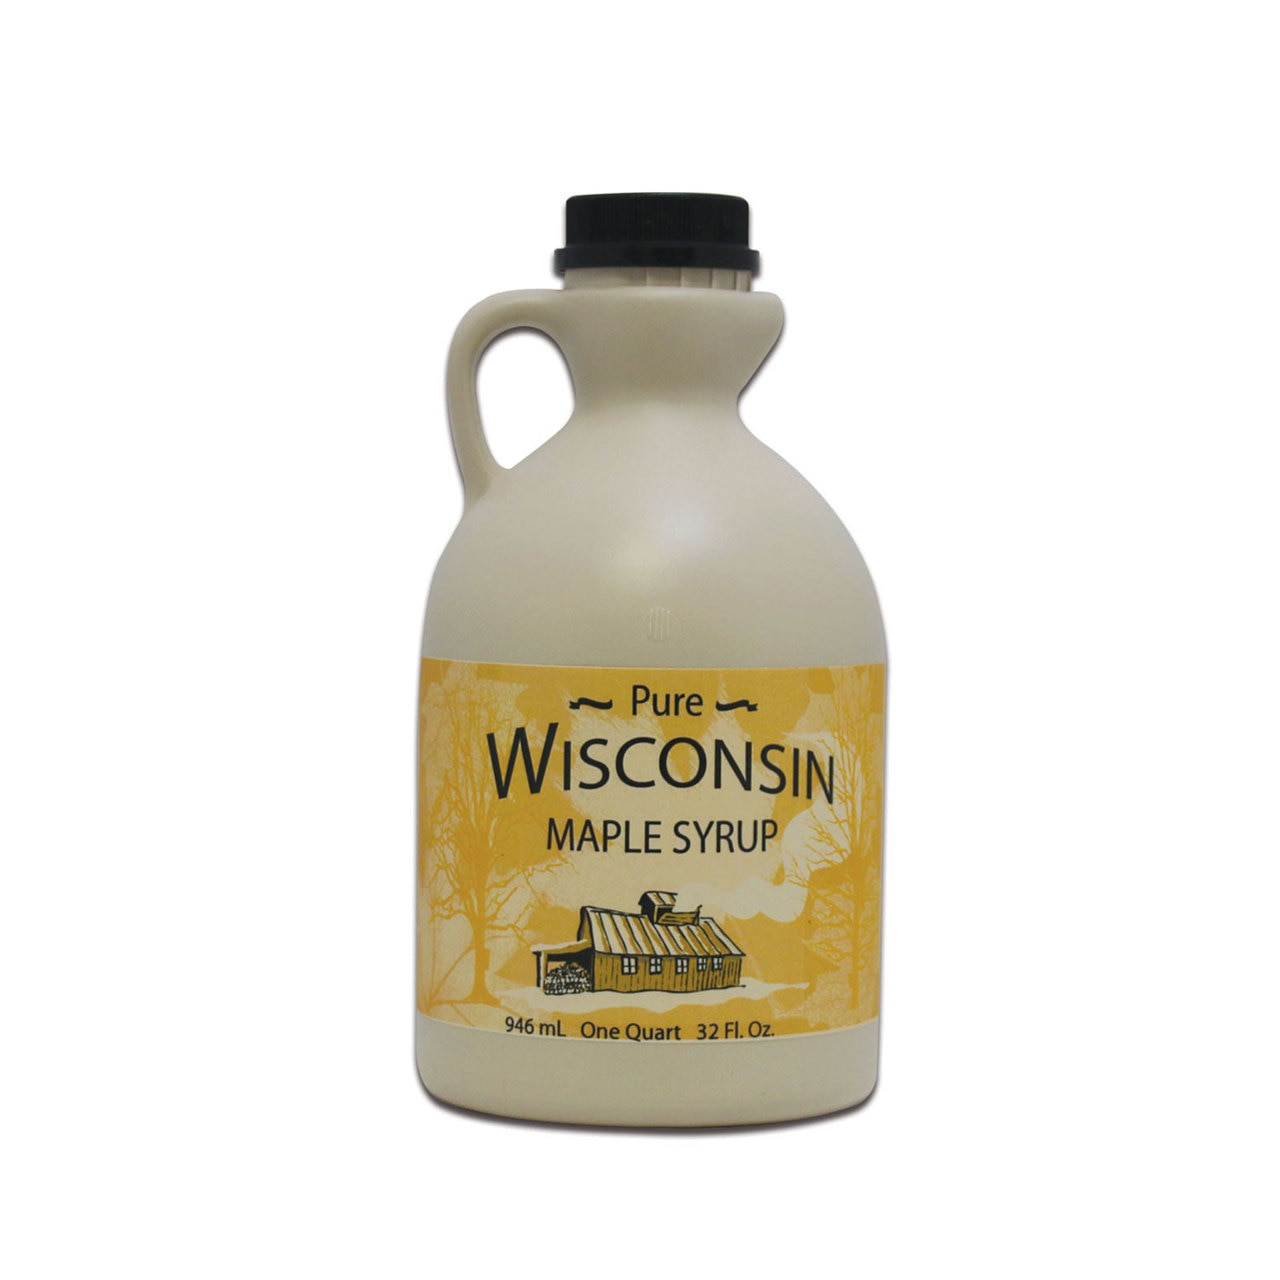 Plastic Jug for Maple Syrup - Wisconsin